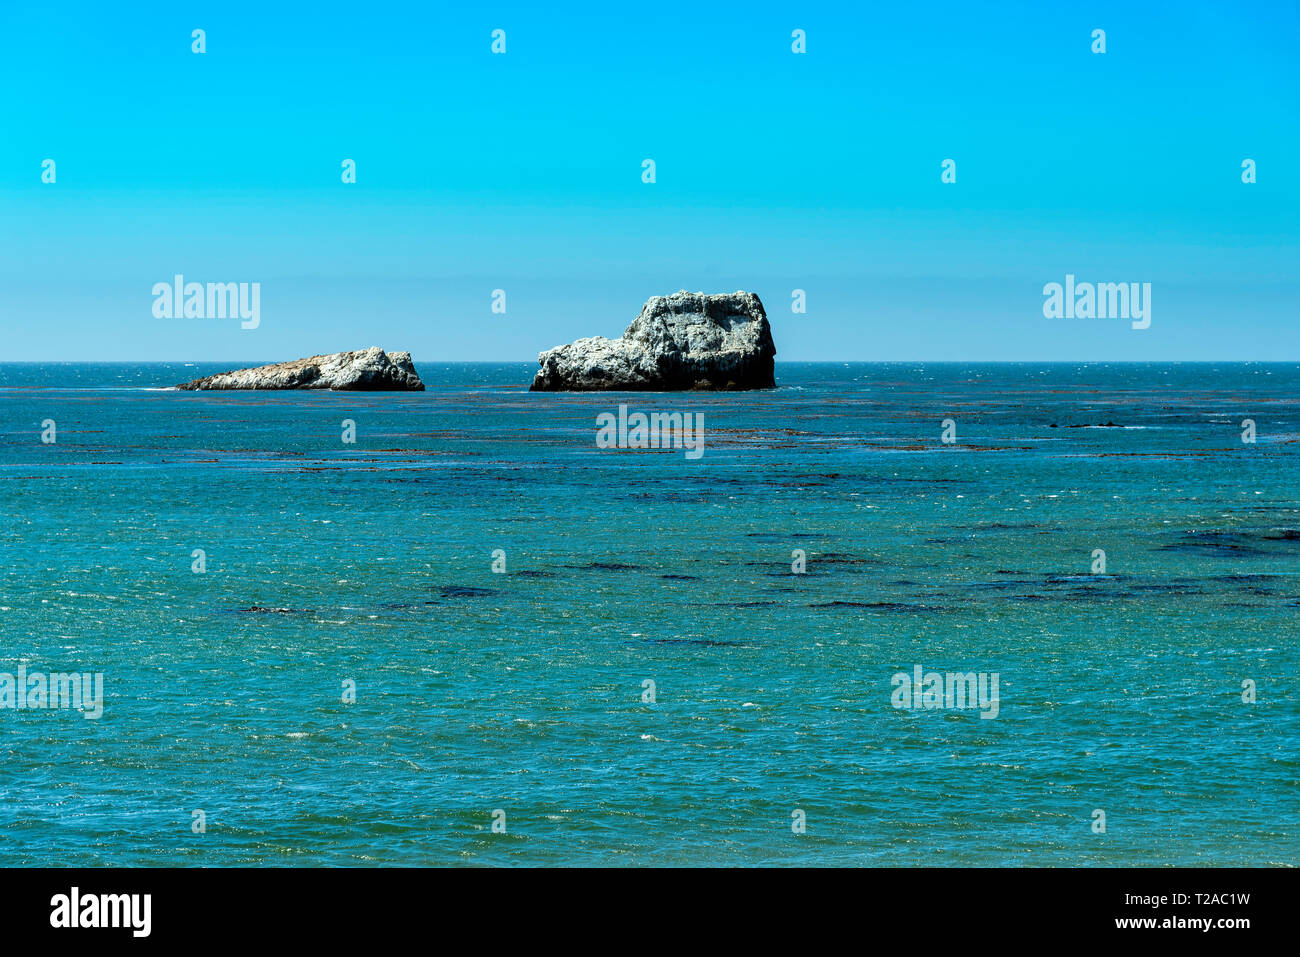 Overlooking ocean with rocky formations in sea under bright blue sky. Stock Photo